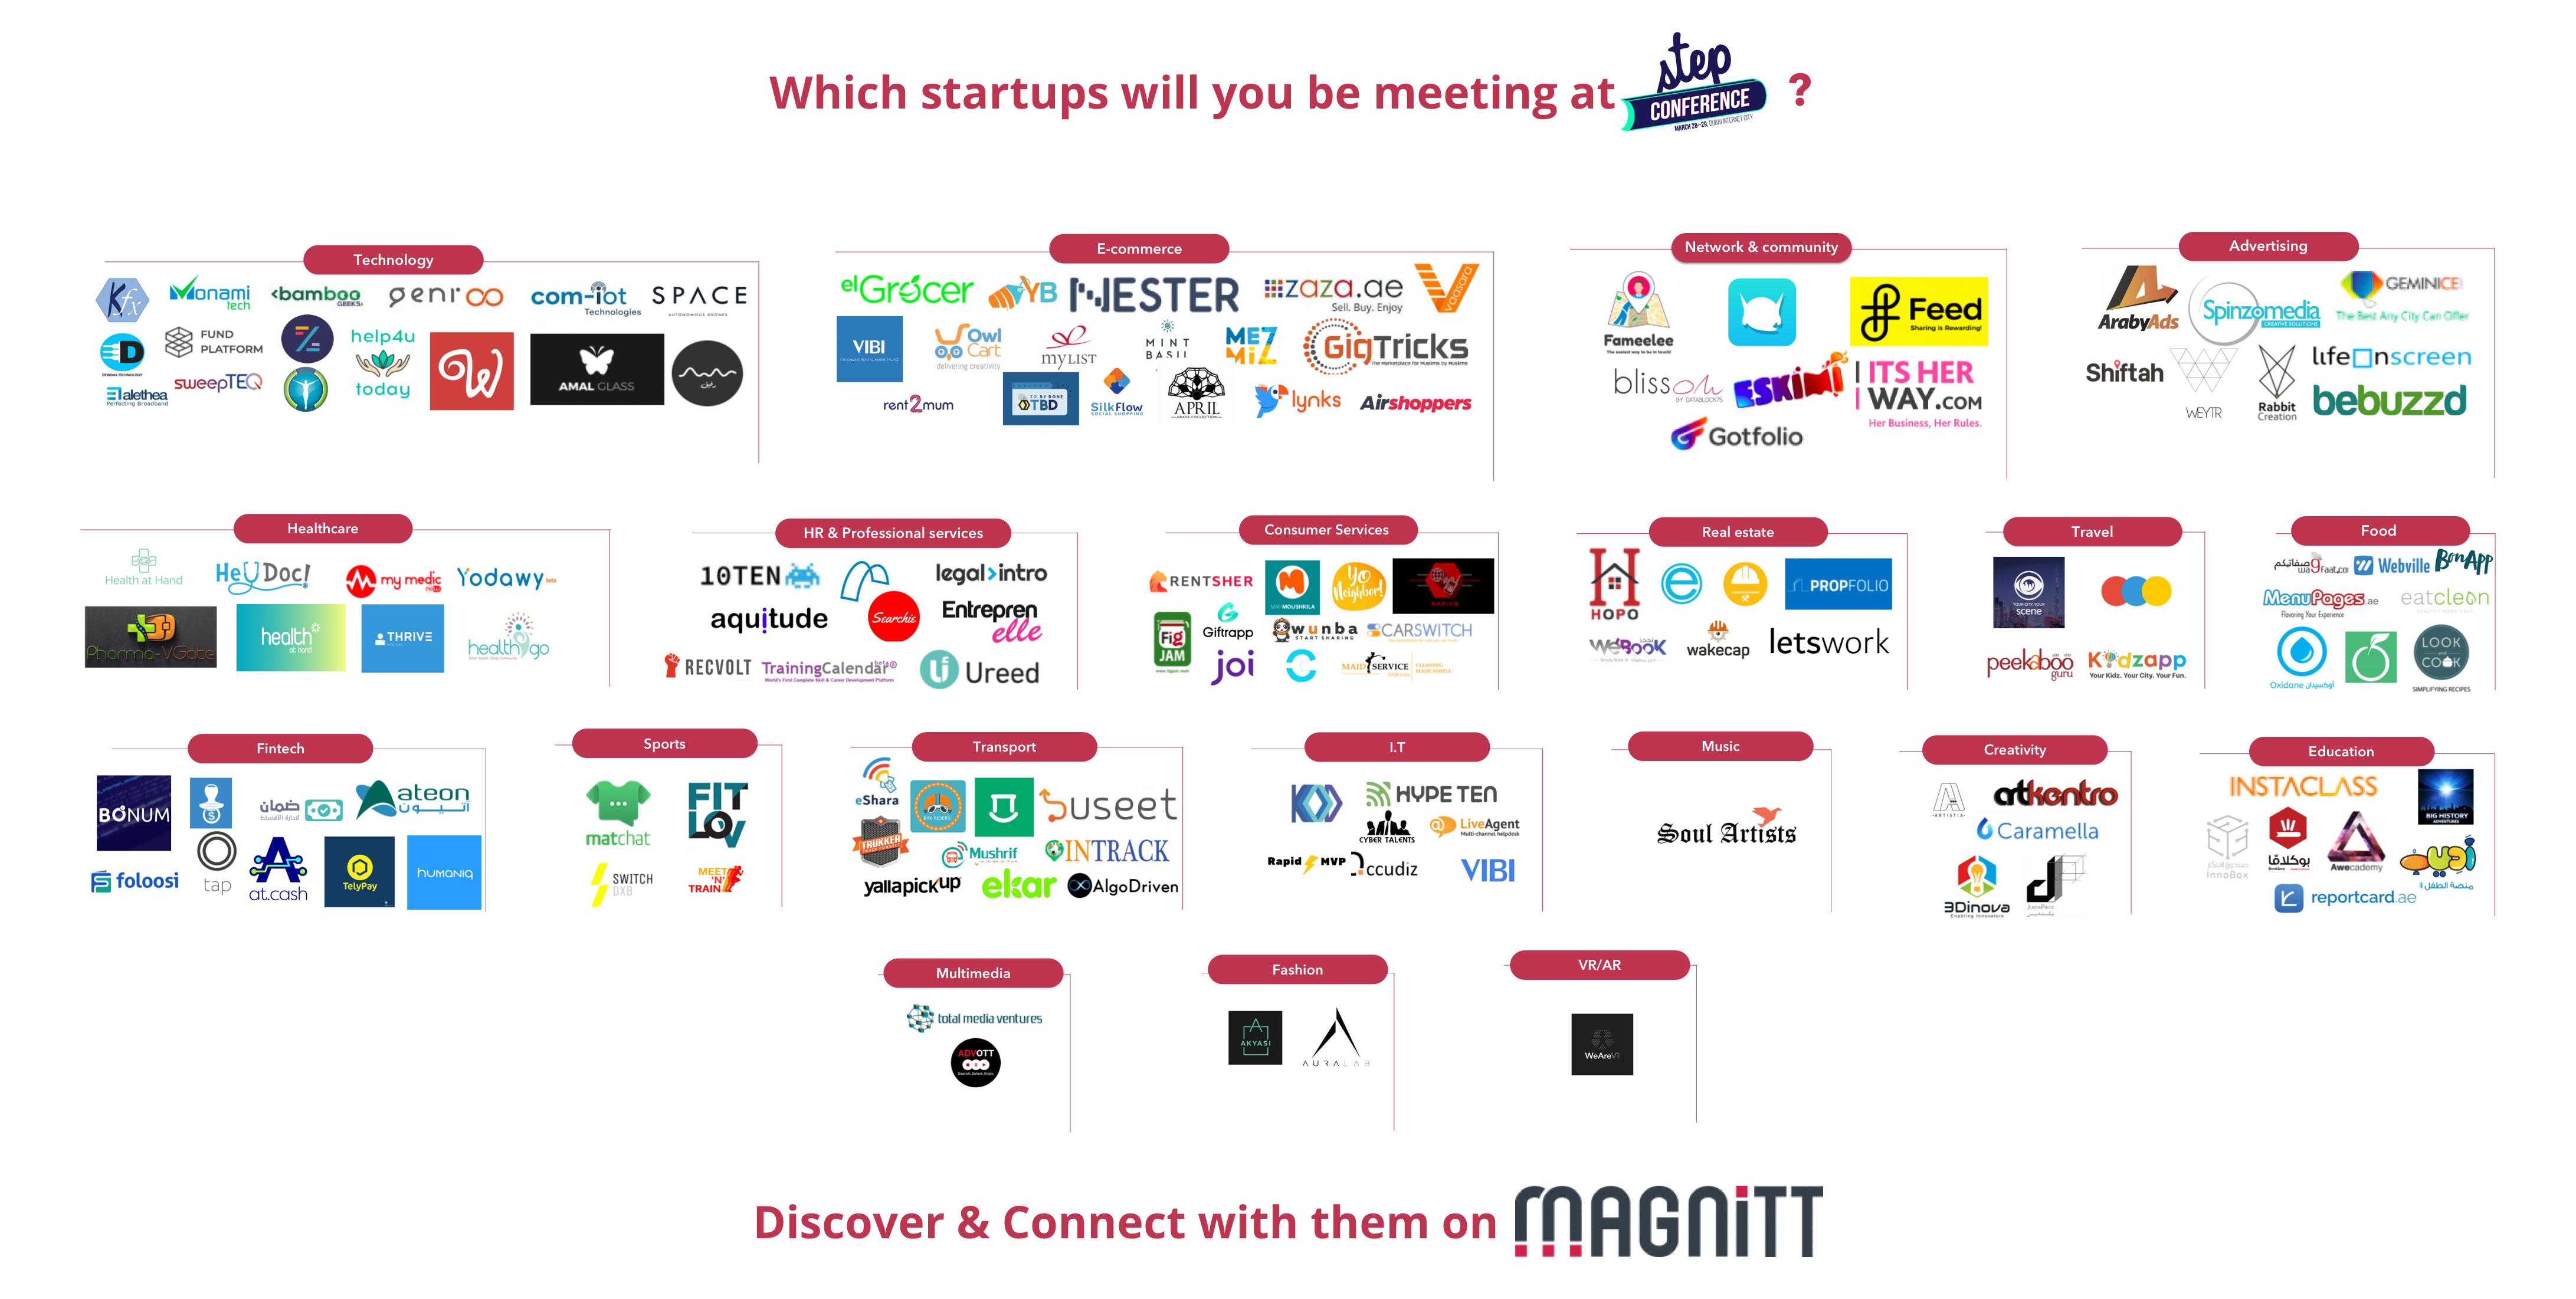 Over 250 startups attending the Step Conference 2018 in Dubai this week. Who are they? Discover them on MAGNiTT!